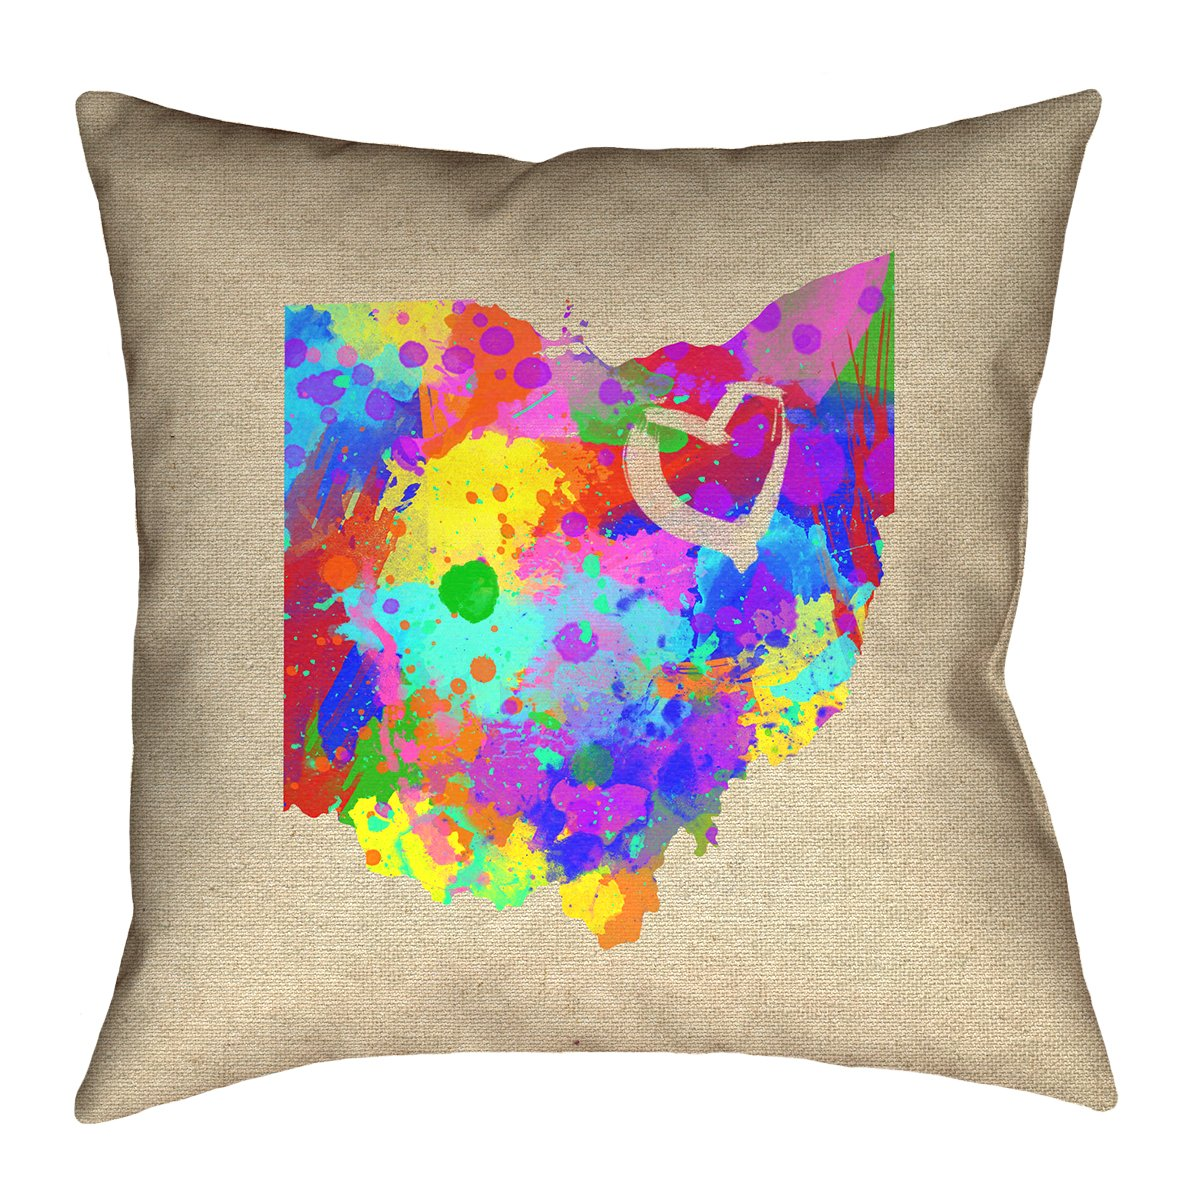 ArtVerse Katelyn Smith 16 x 16 Spun Polyester Ohio Love Watercolor Pillow